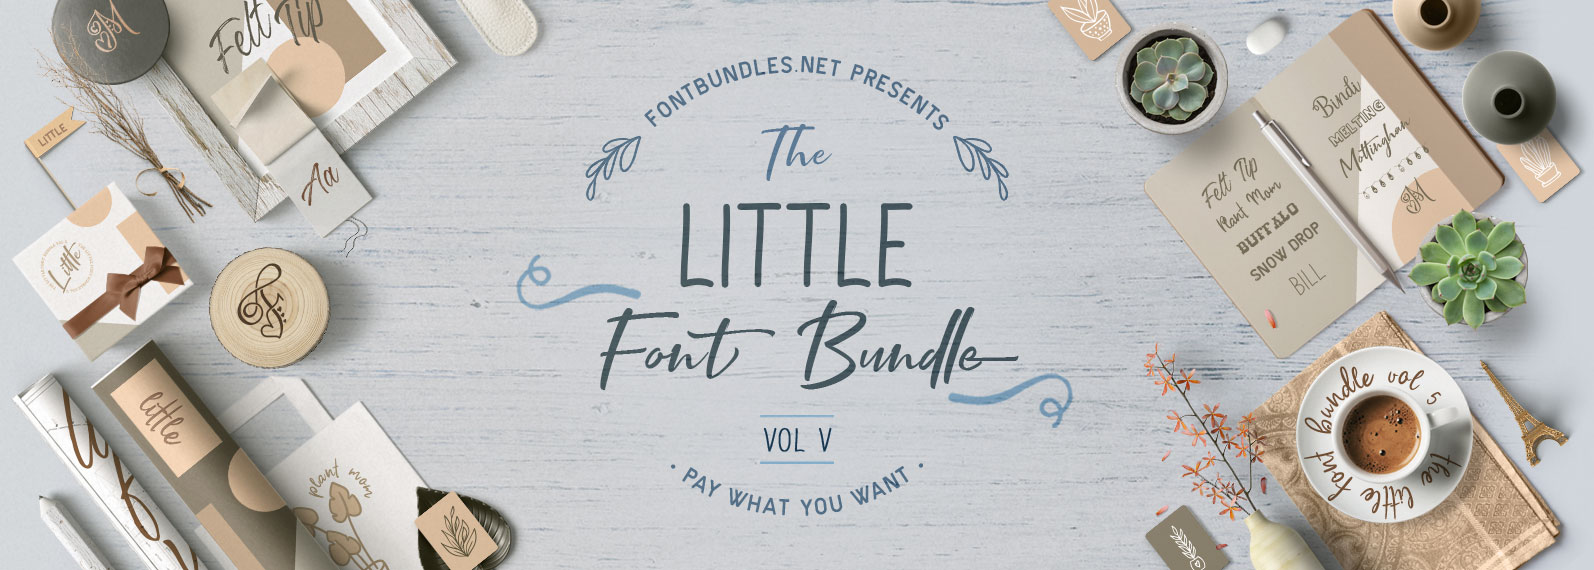 The Little Font Bundle Vol V Cover